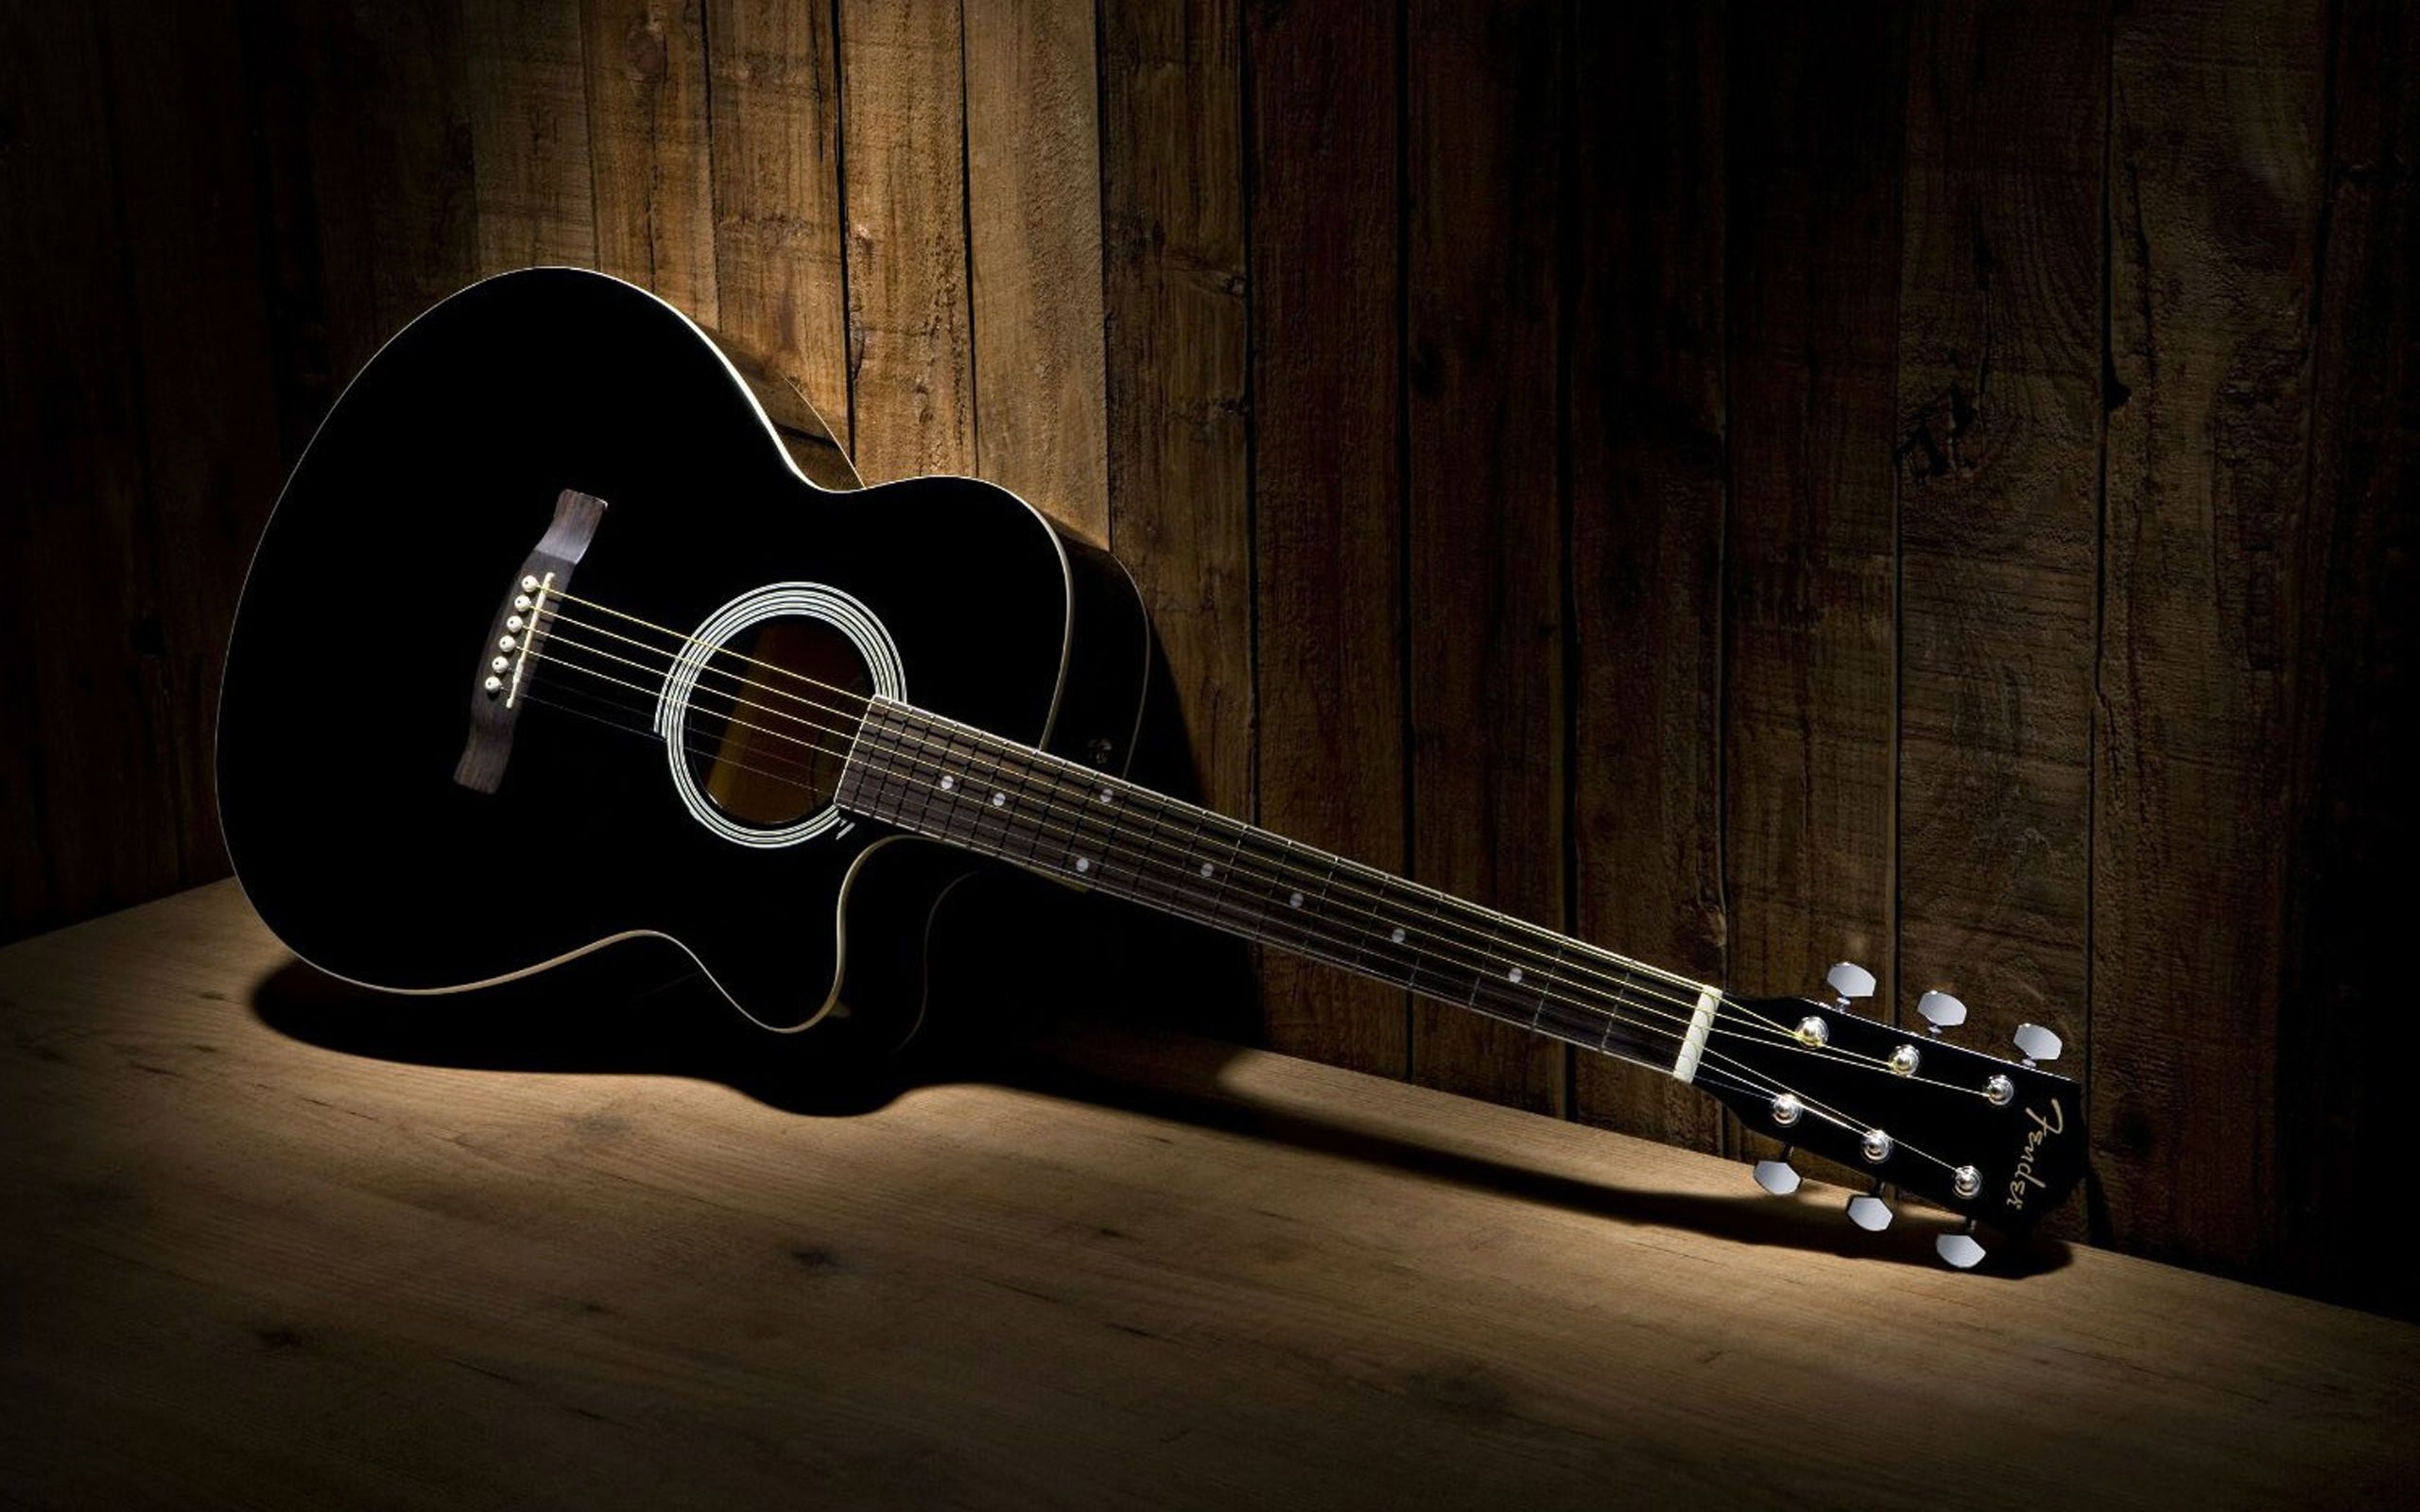 Musical Instrument Wallpapers High Resolution With Hd Wallpaper 2560x1600 Px